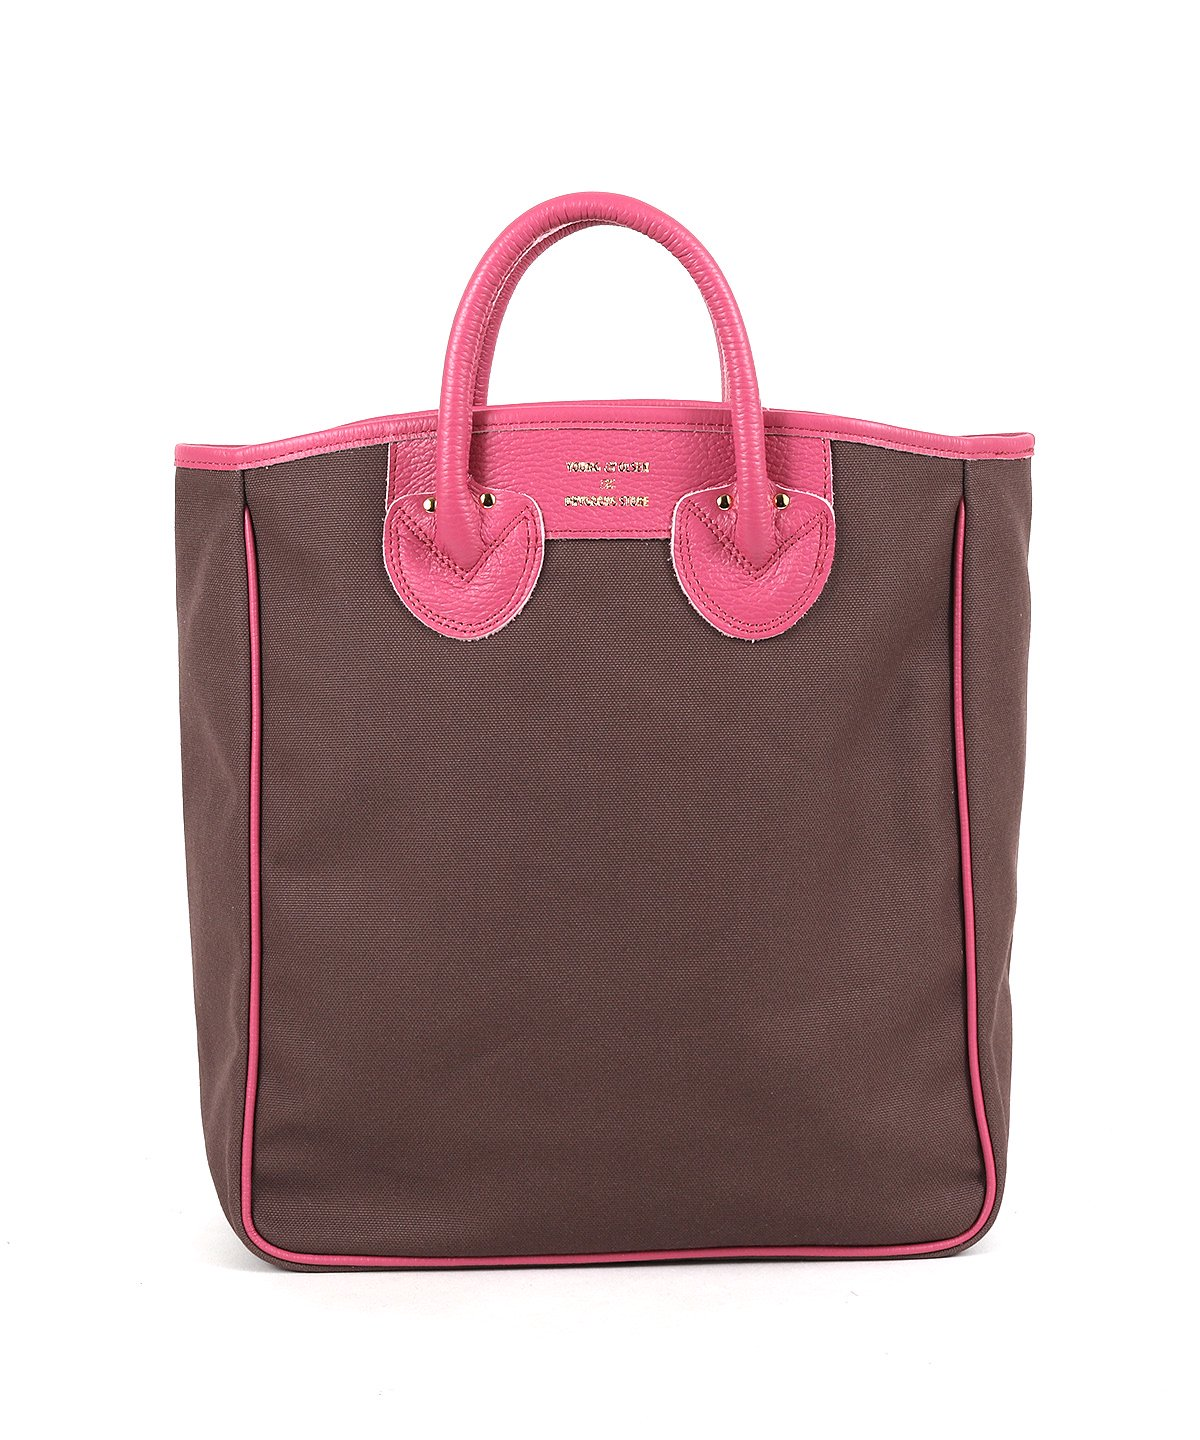 CANVAS CARRYALL TOTE M